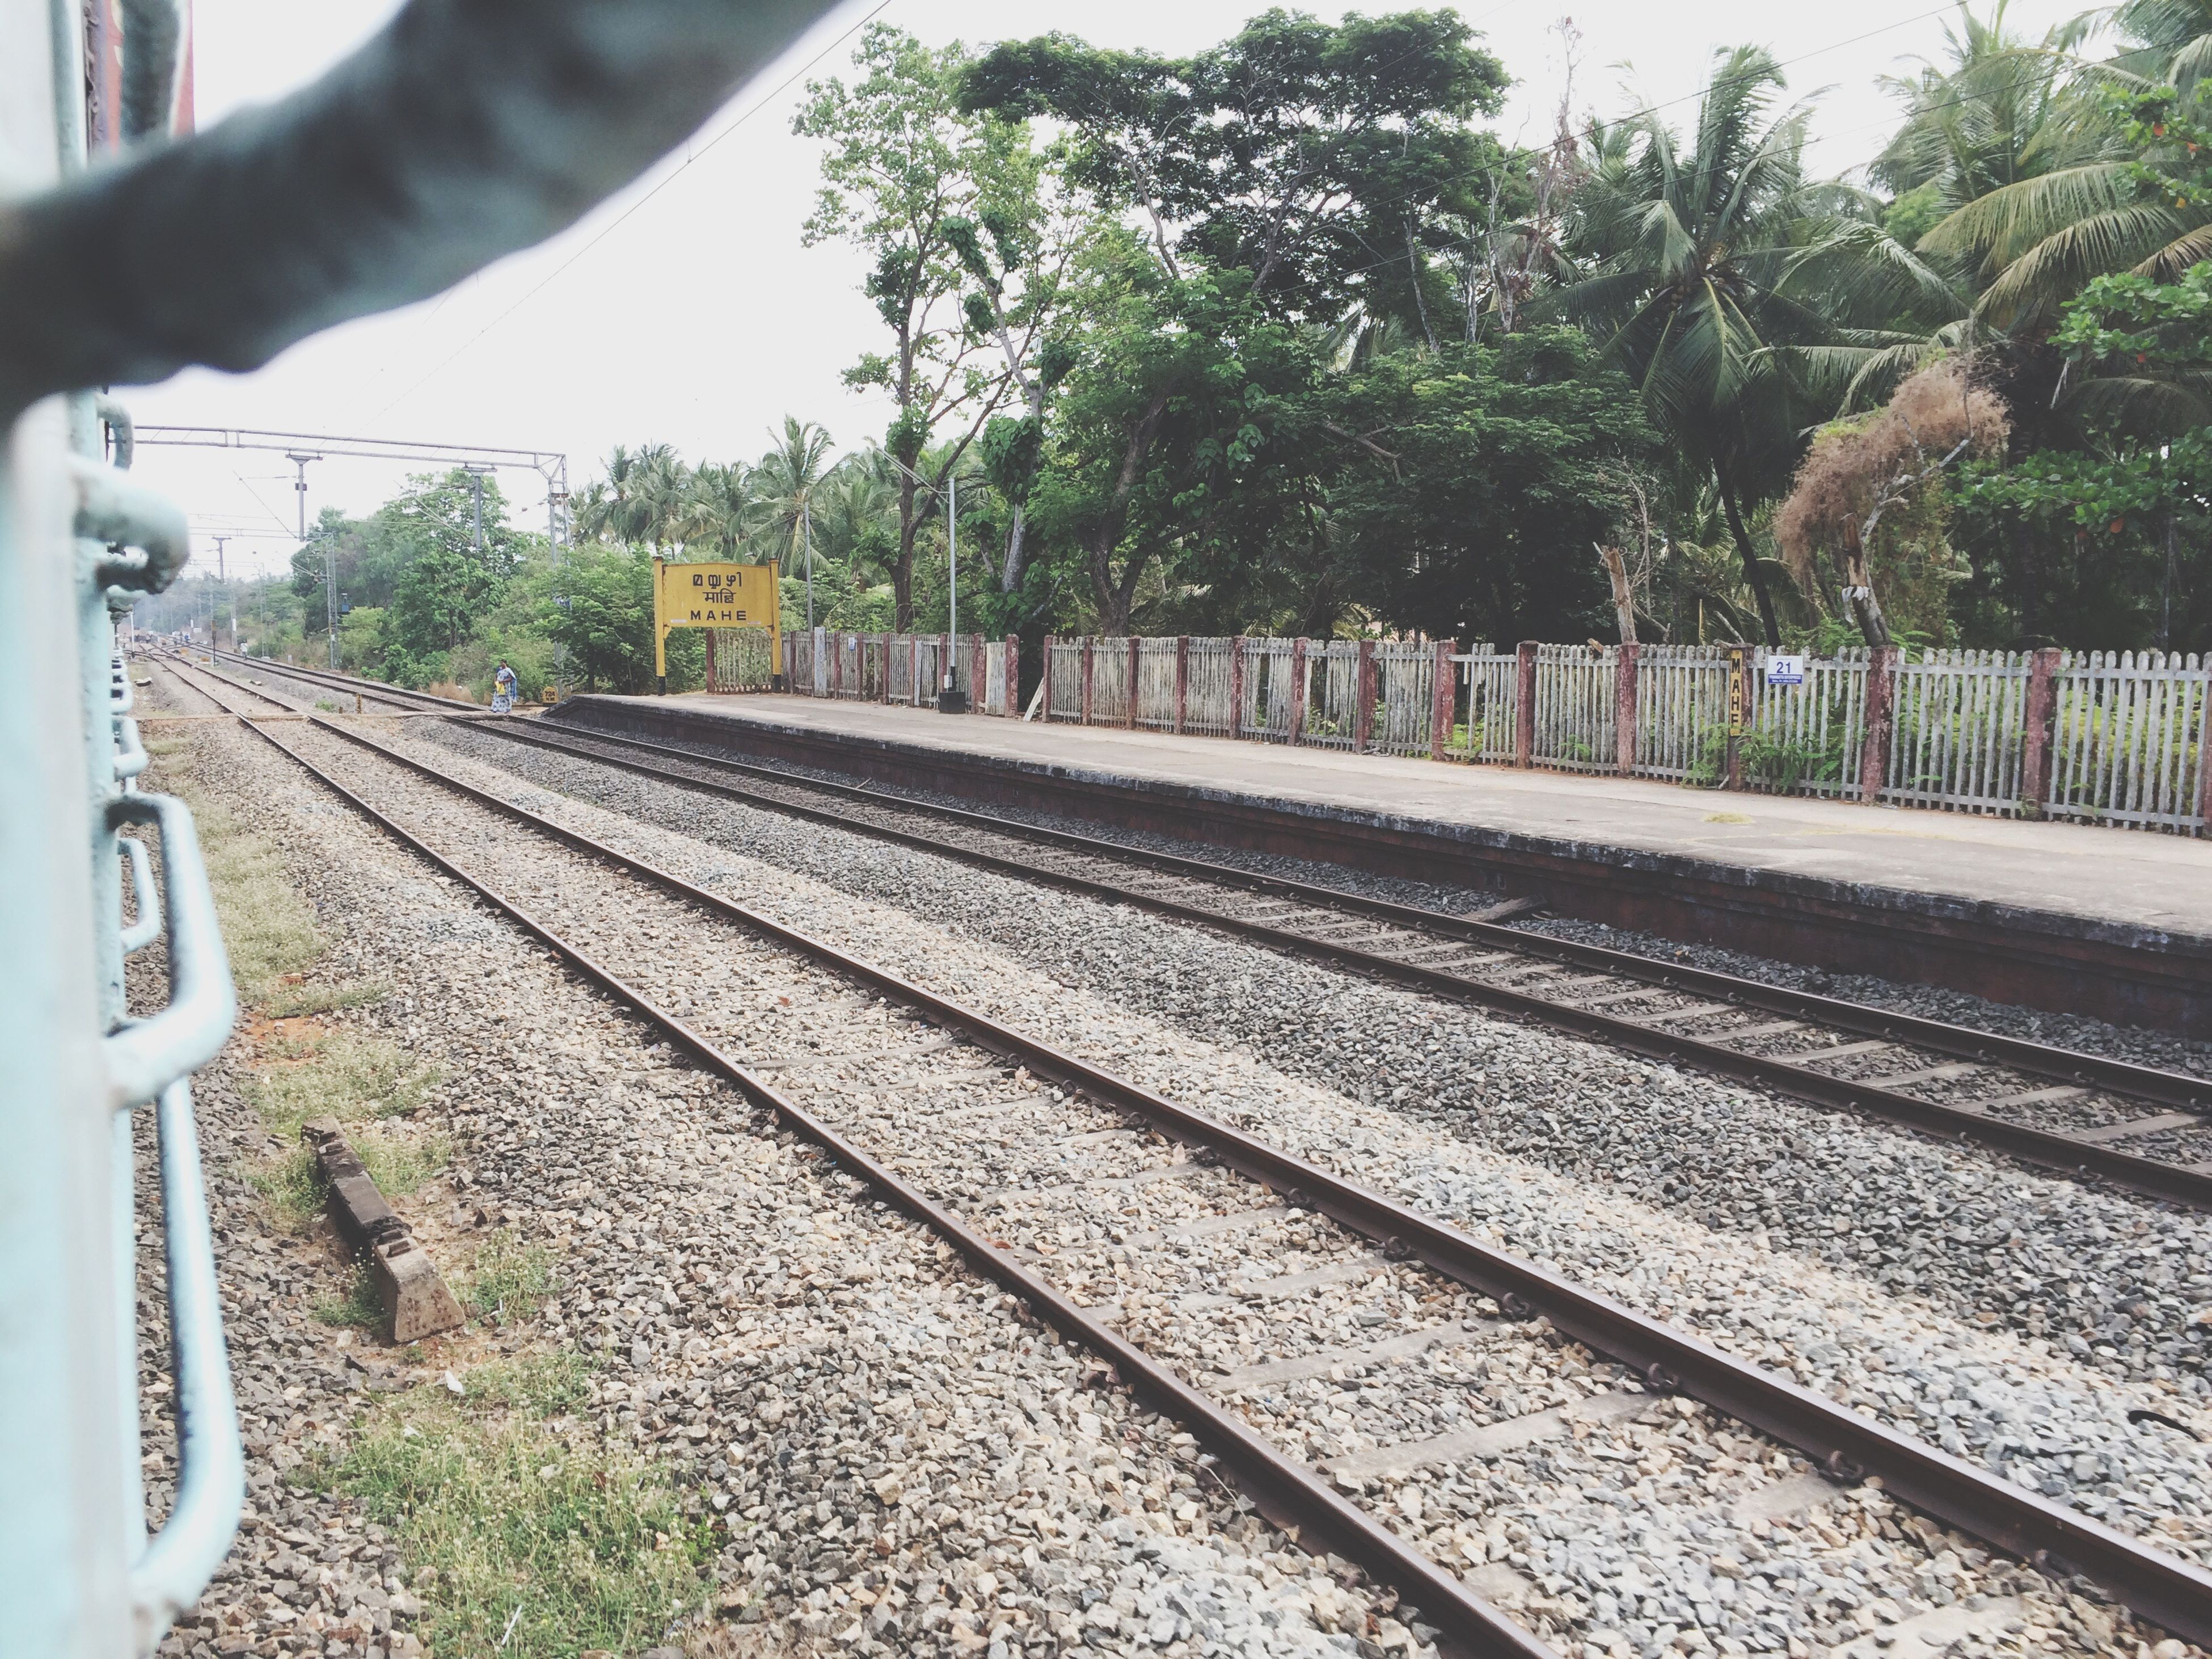 railroad track, transportation, rail transportation, tree, public transportation, railroad station platform, the way forward, diminishing perspective, railroad station, railway track, mode of transport, train - vehicle, vanishing point, day, travel, train, outdoors, no people, road, sky